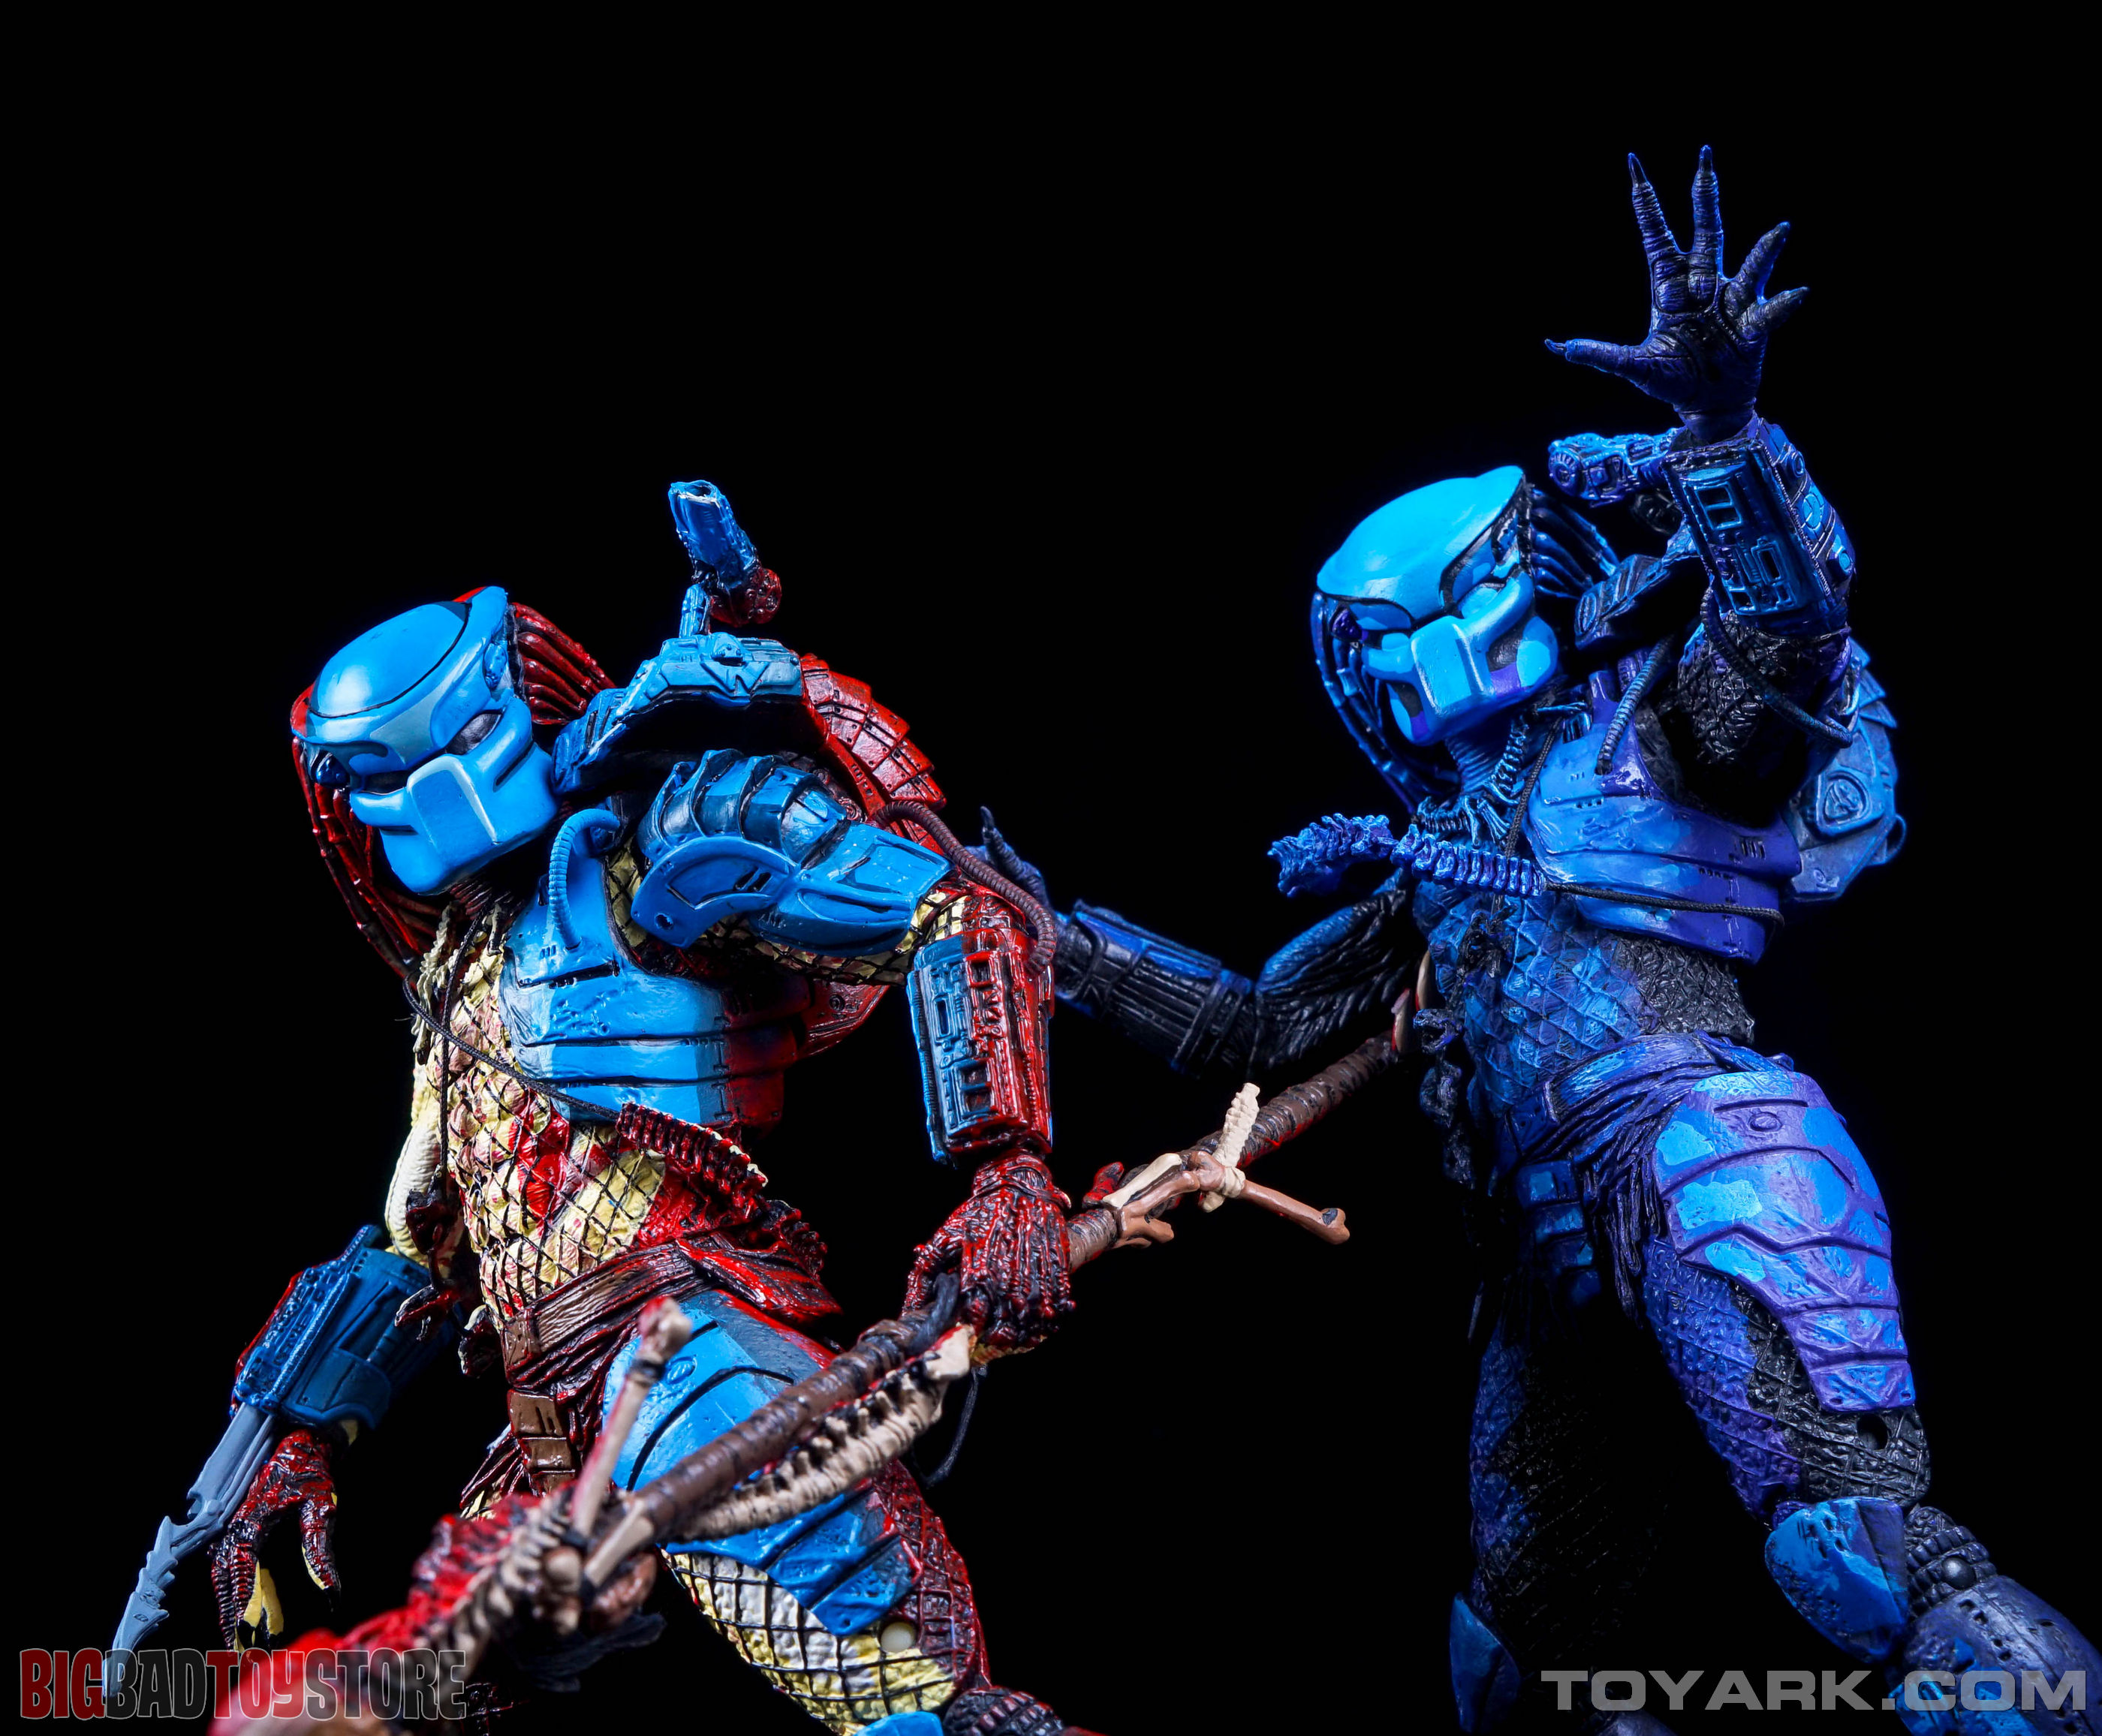 http://news.toyark.com/wp-content/uploads/sites/4/2015/07/NECA-Dark-Horse-Predator-052.jpg